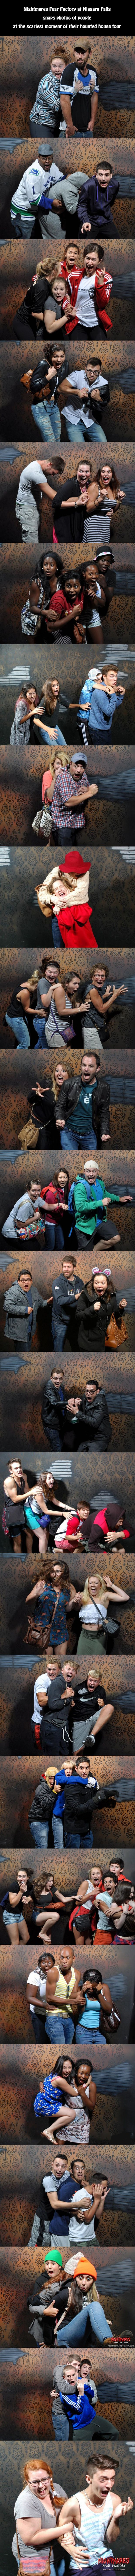 hilarious haunted house reactions ~ LMAO! | from Nightmares Fear Factory…